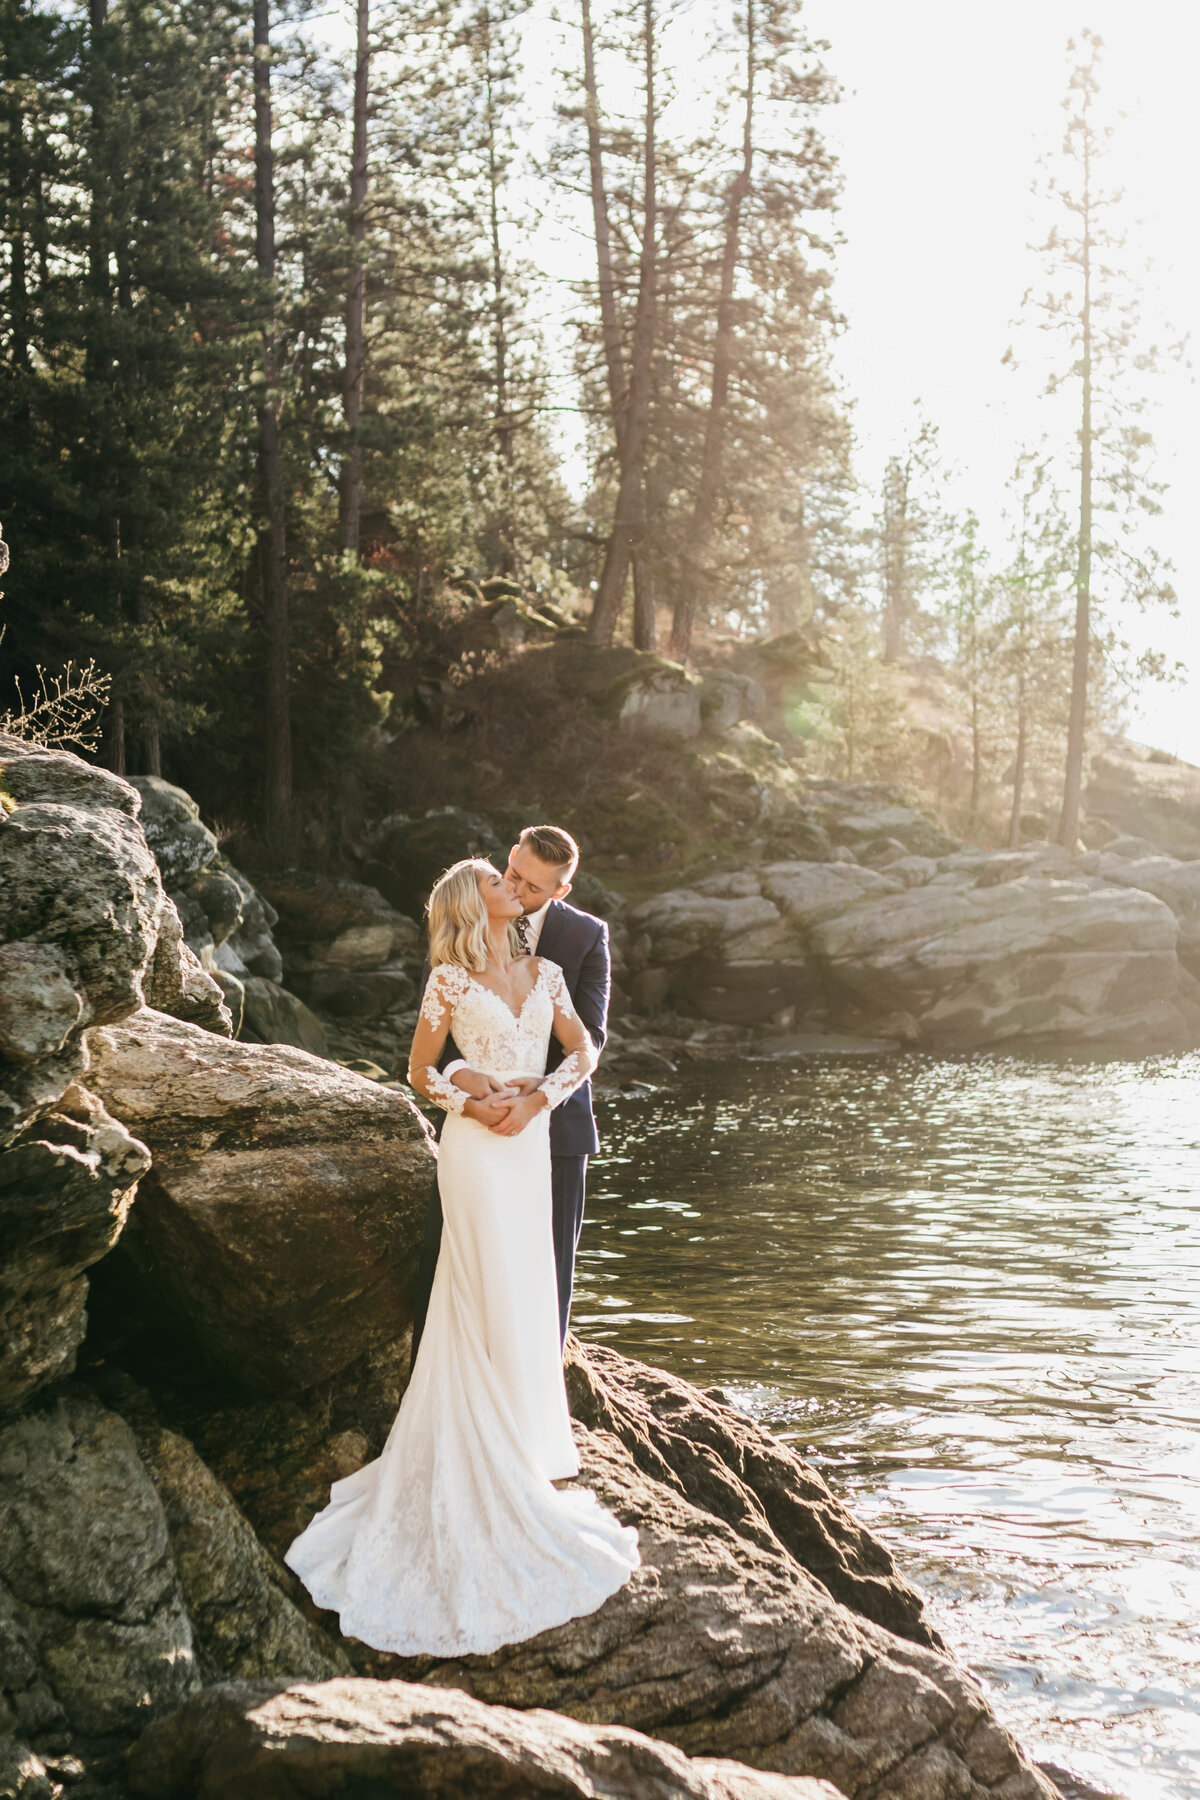 Beautiful Wedding at Tubbs Hill in Coeur d'Alene Idaho - Clara Jay Photo_-2